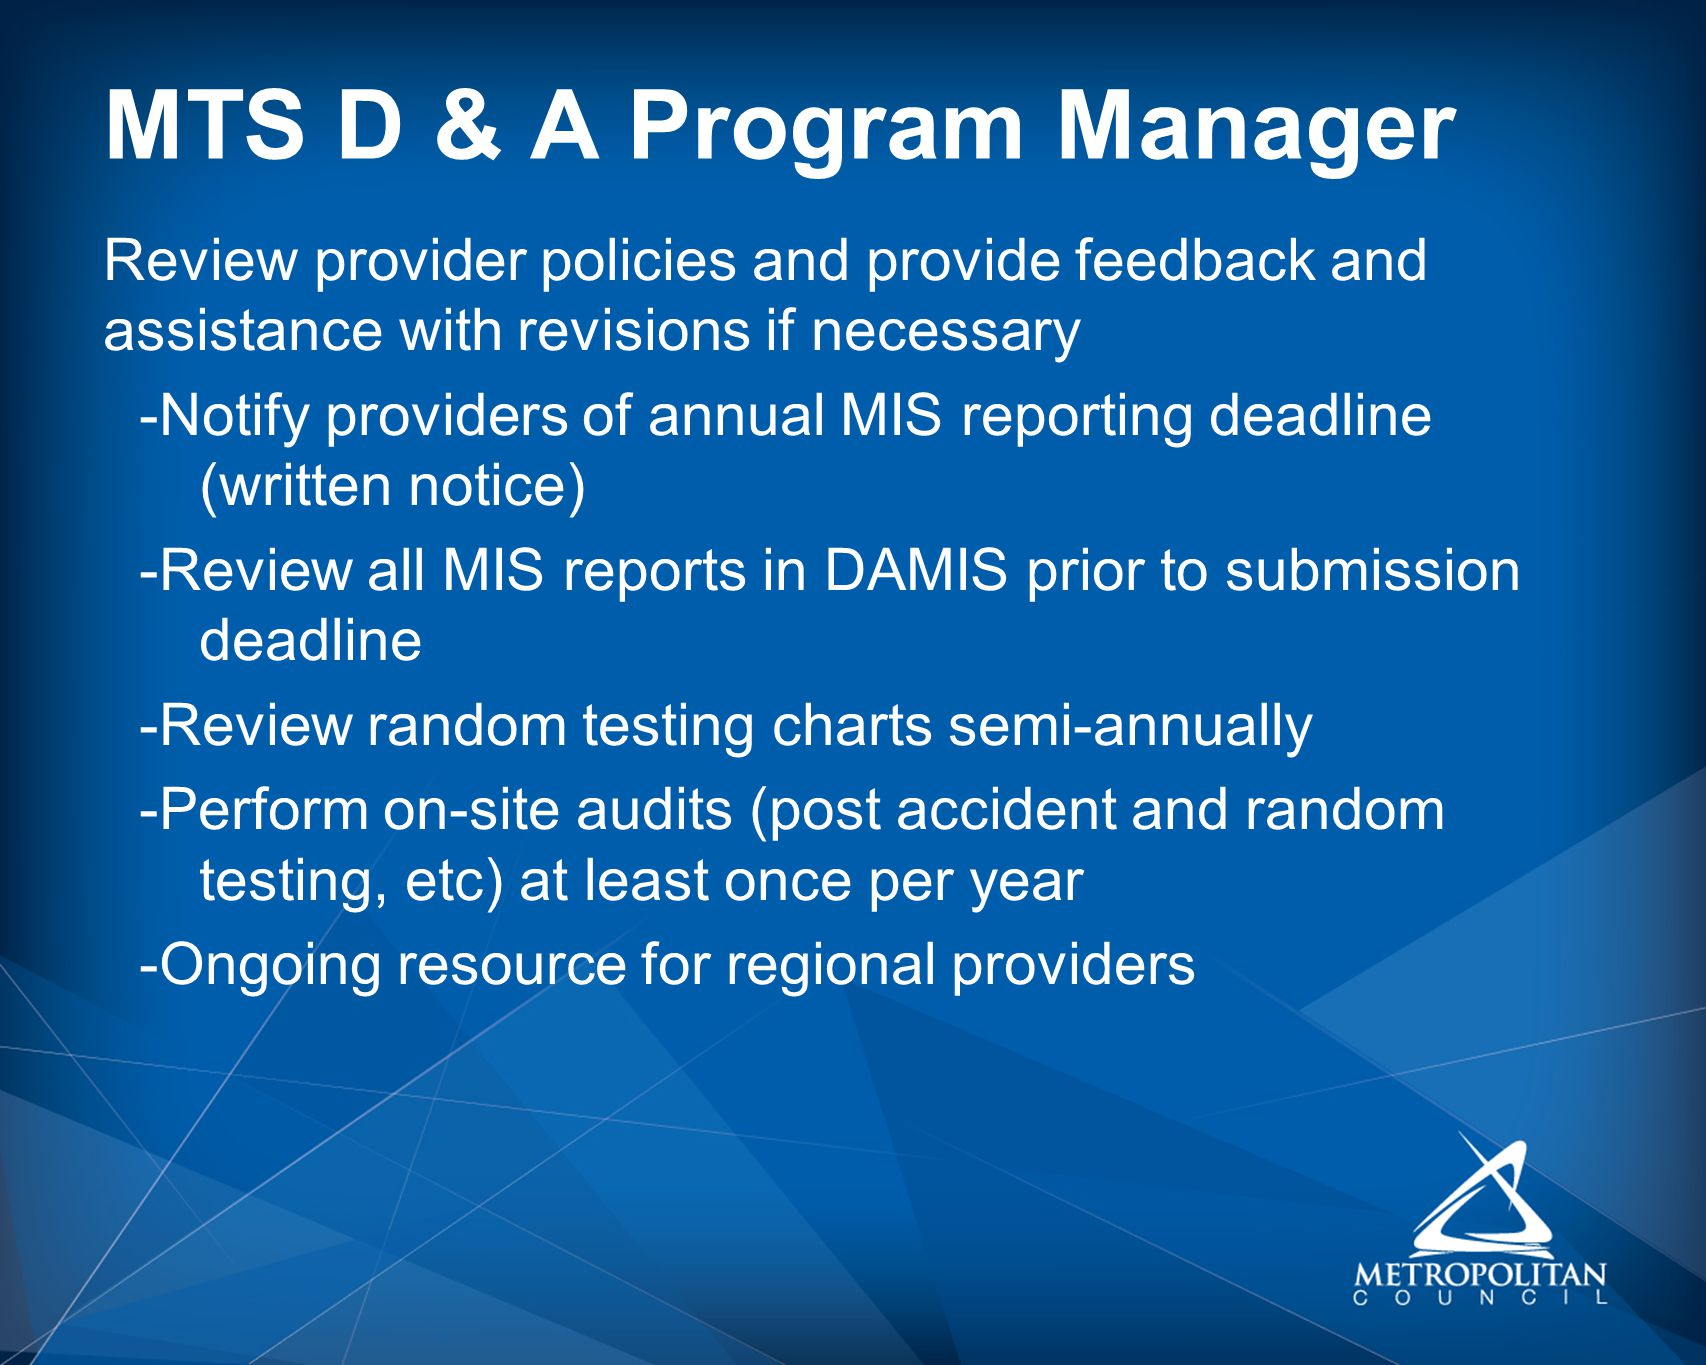 MTS D & A Program Manager Review provider policies and provide feedback and assistance with revisions if necessary -Notify providers of annual MIS reporting deadline (written notice) -Review all MIS reports in DAMIS prior to submission deadline -Review random testing charts semi-annually -Perform on-site audits (post accident and random testing, etc) at least once per year -Ongoing resource for regional providers